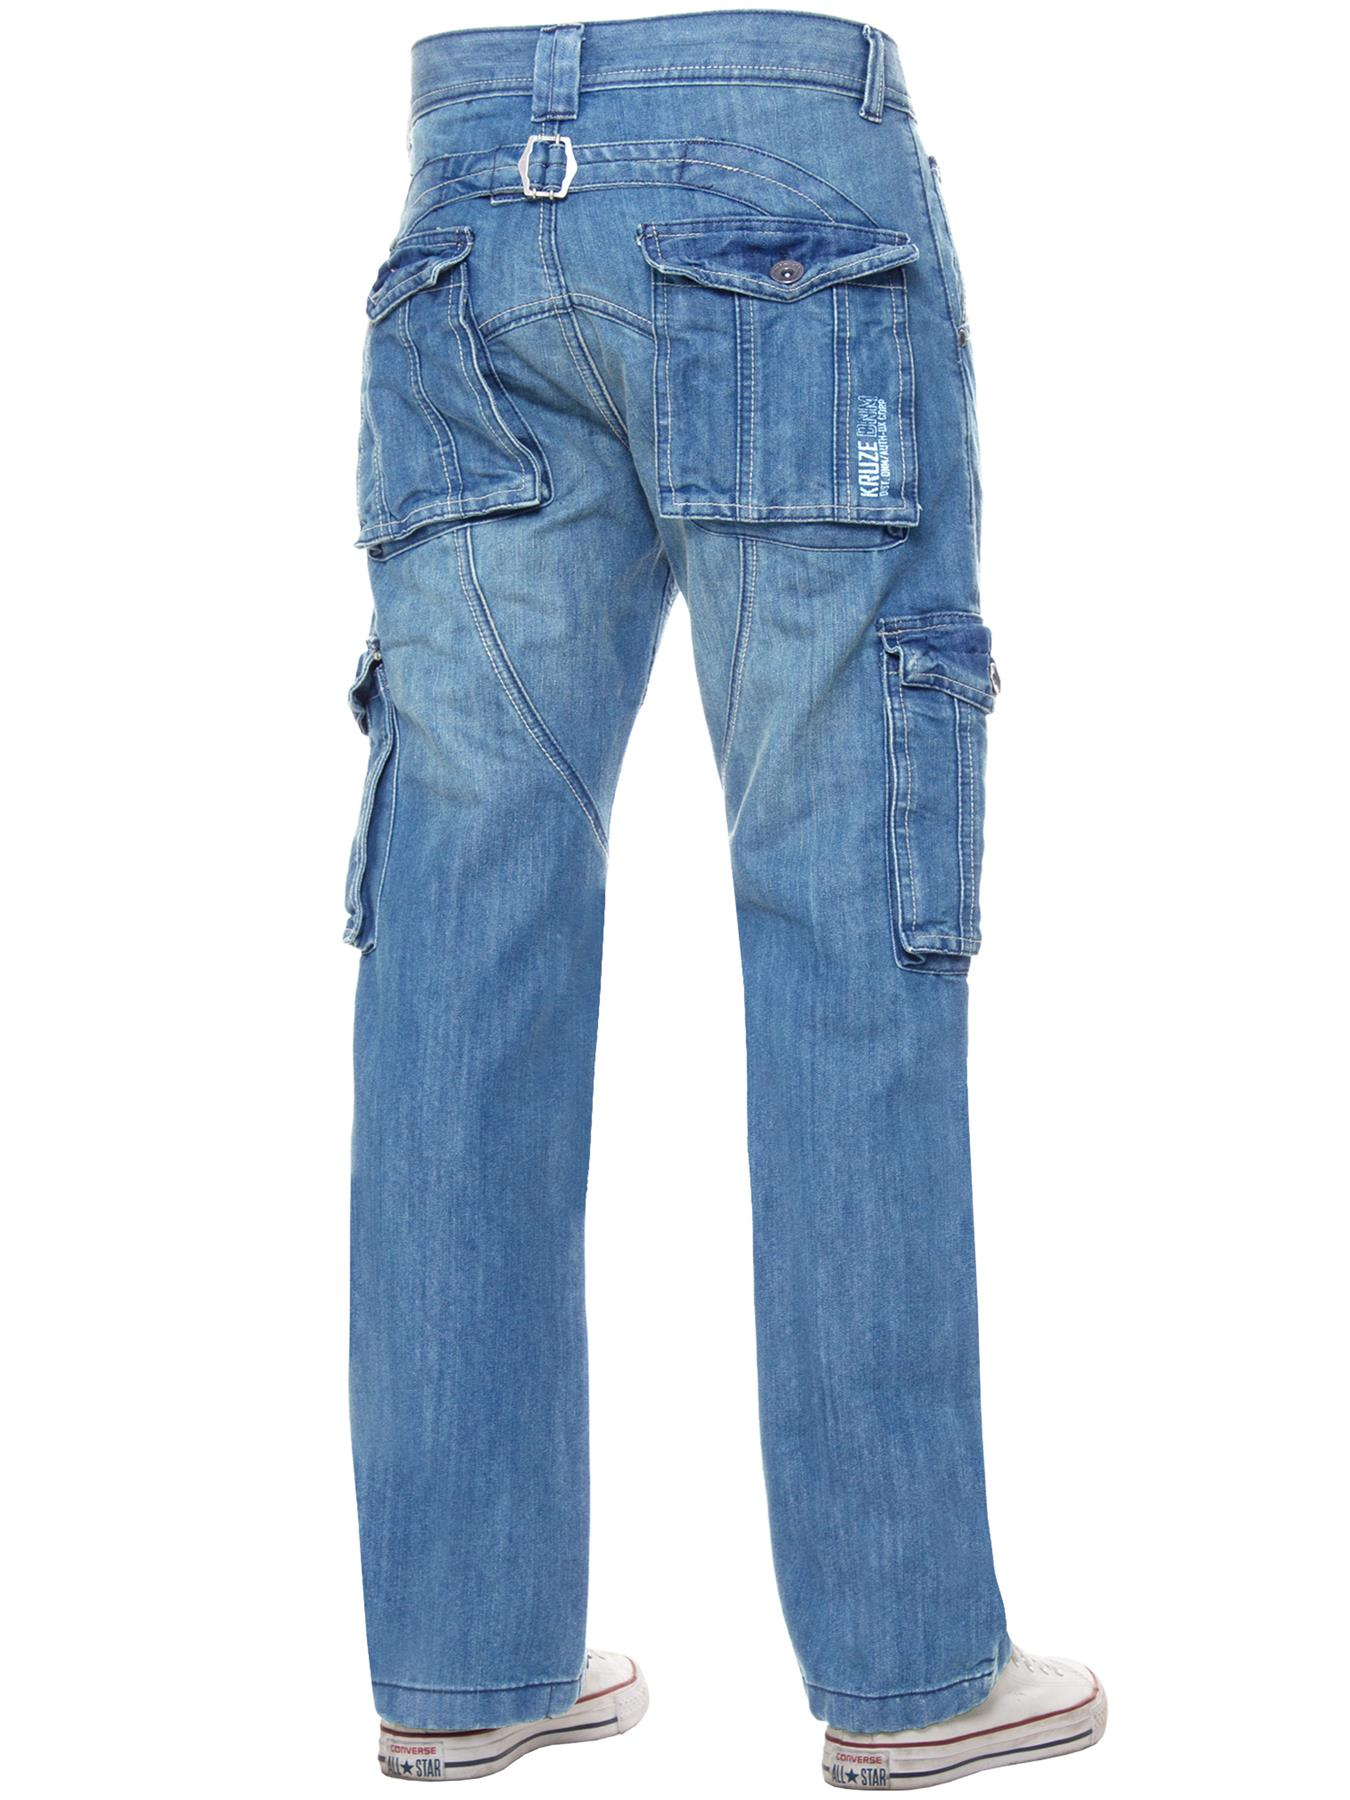 Kruze-Mens-Cargo-Combat-Jeans-Casual-Work-Denim-Pants-Big-Tall-All-Waist-Sizes thumbnail 47